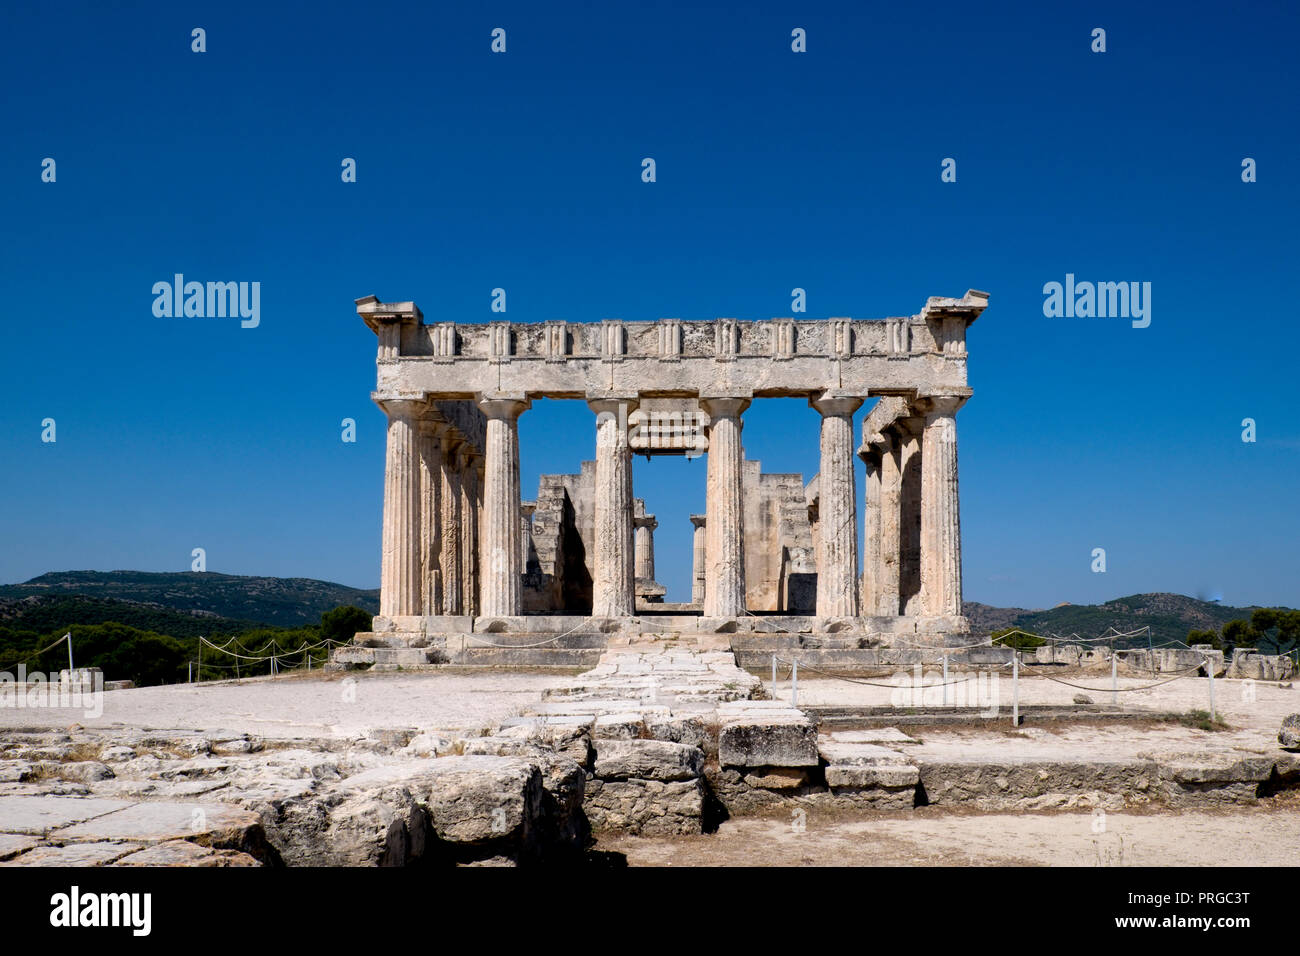 The ruins of the ancient Temple of Aphaia on the island of Aegina, Greece. - Stock Image